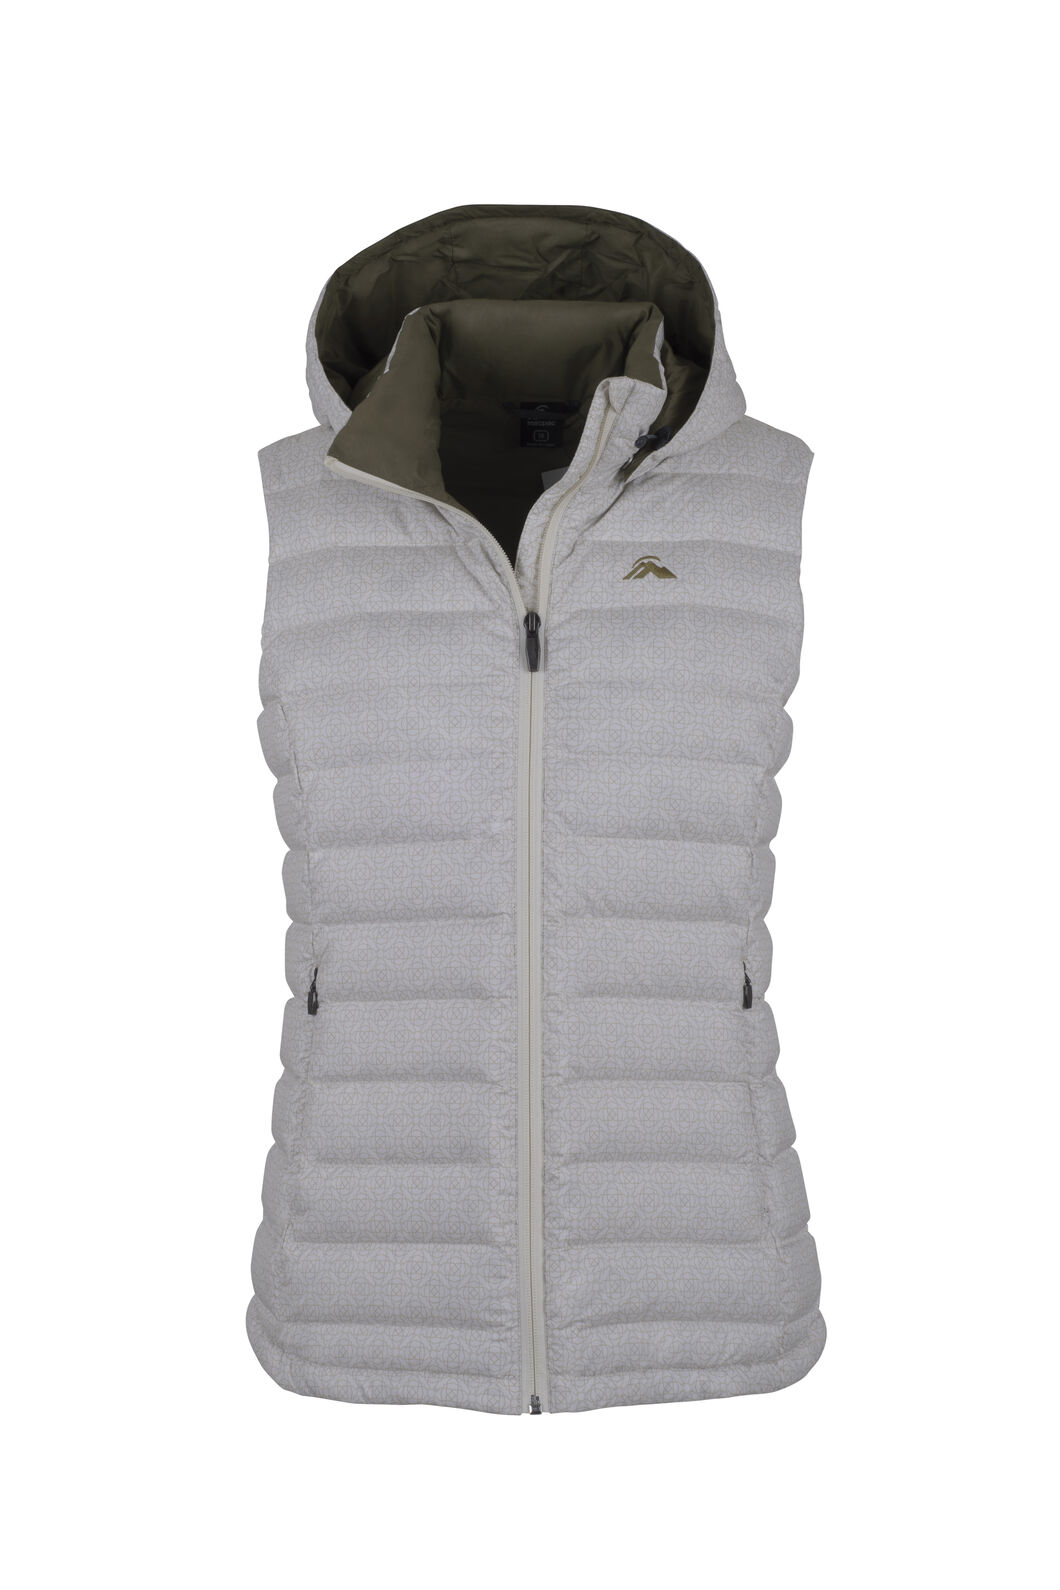 Macpac Zodiac Hooded Down Vest - Women's, Snow White Tile, hi-res